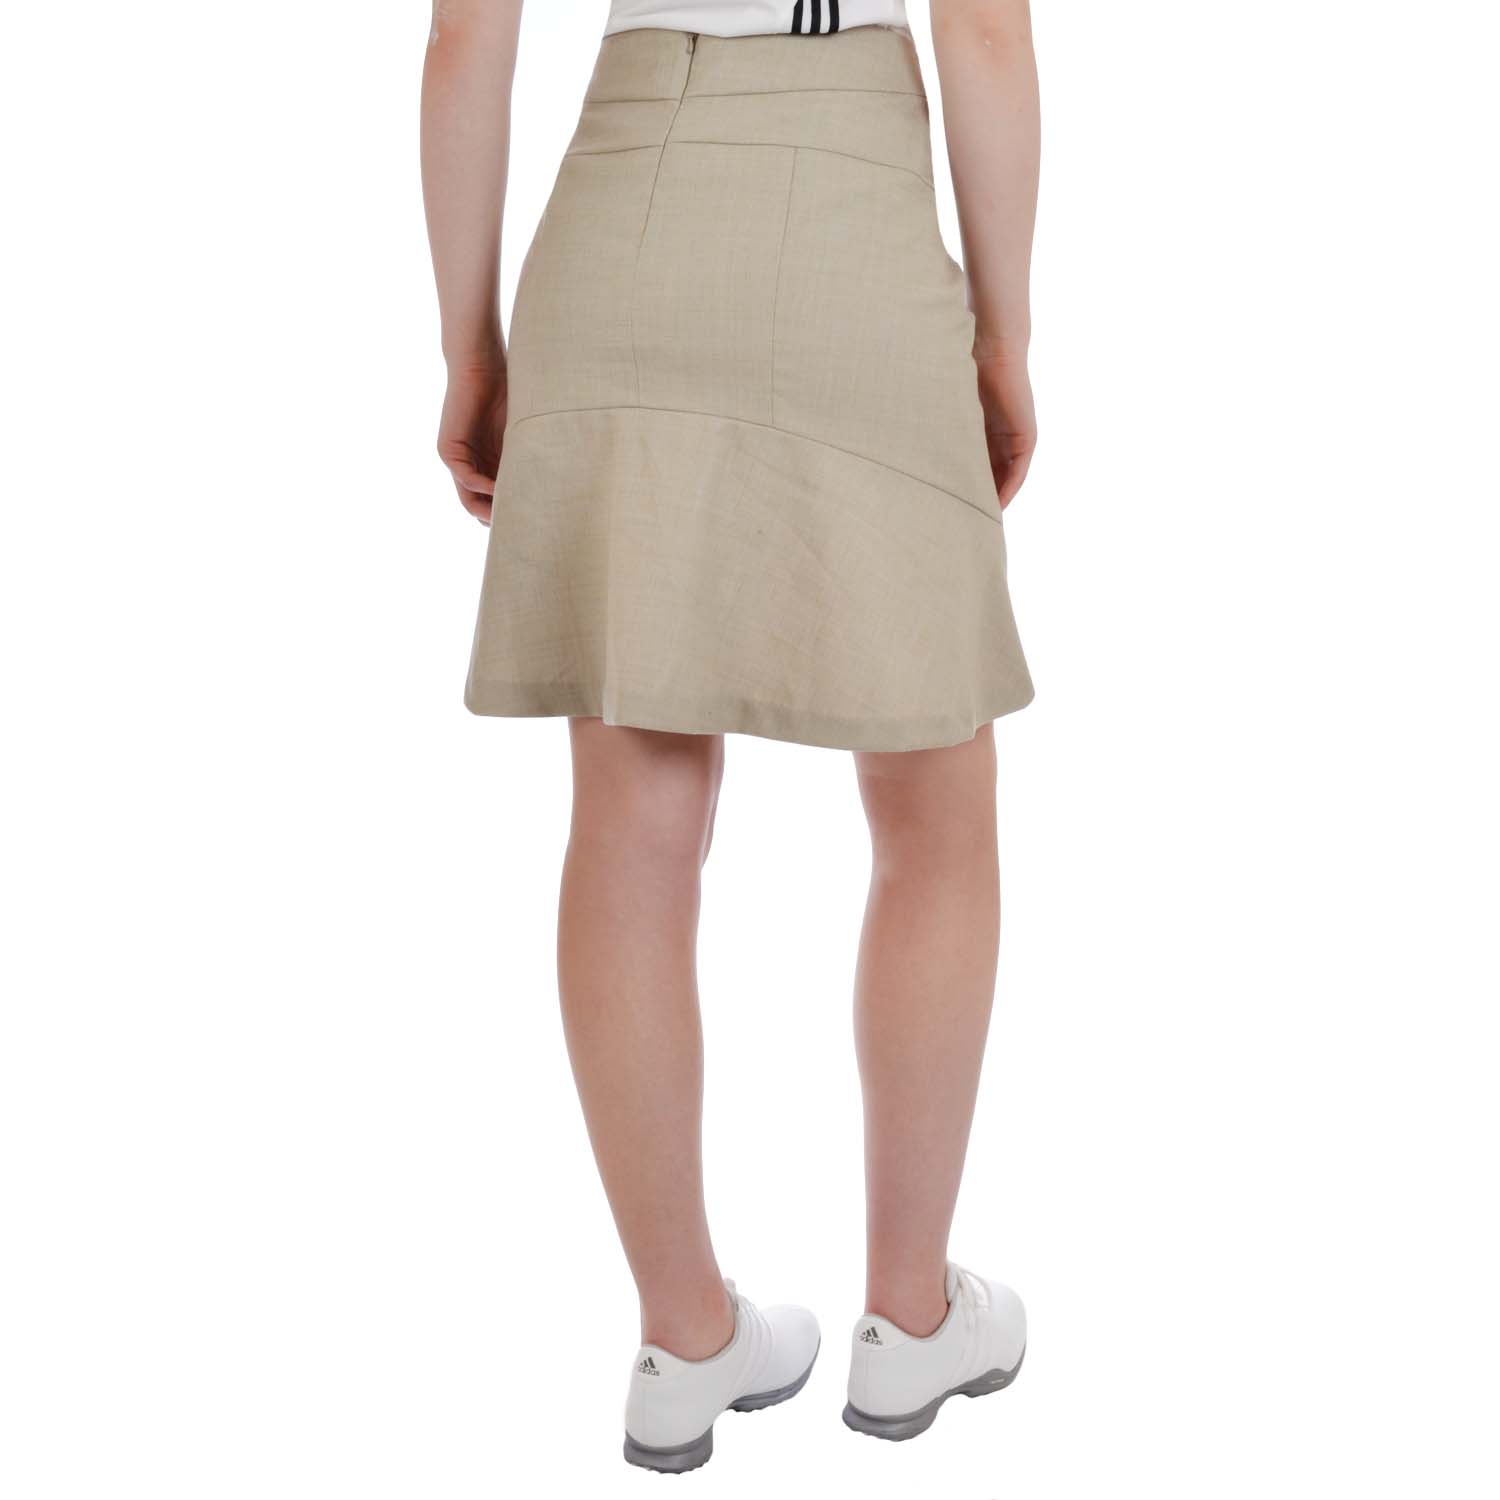 Awesome  Golf Skirts  Women39s Ruffle Butt Golf Skirt Black  Women39s Golf